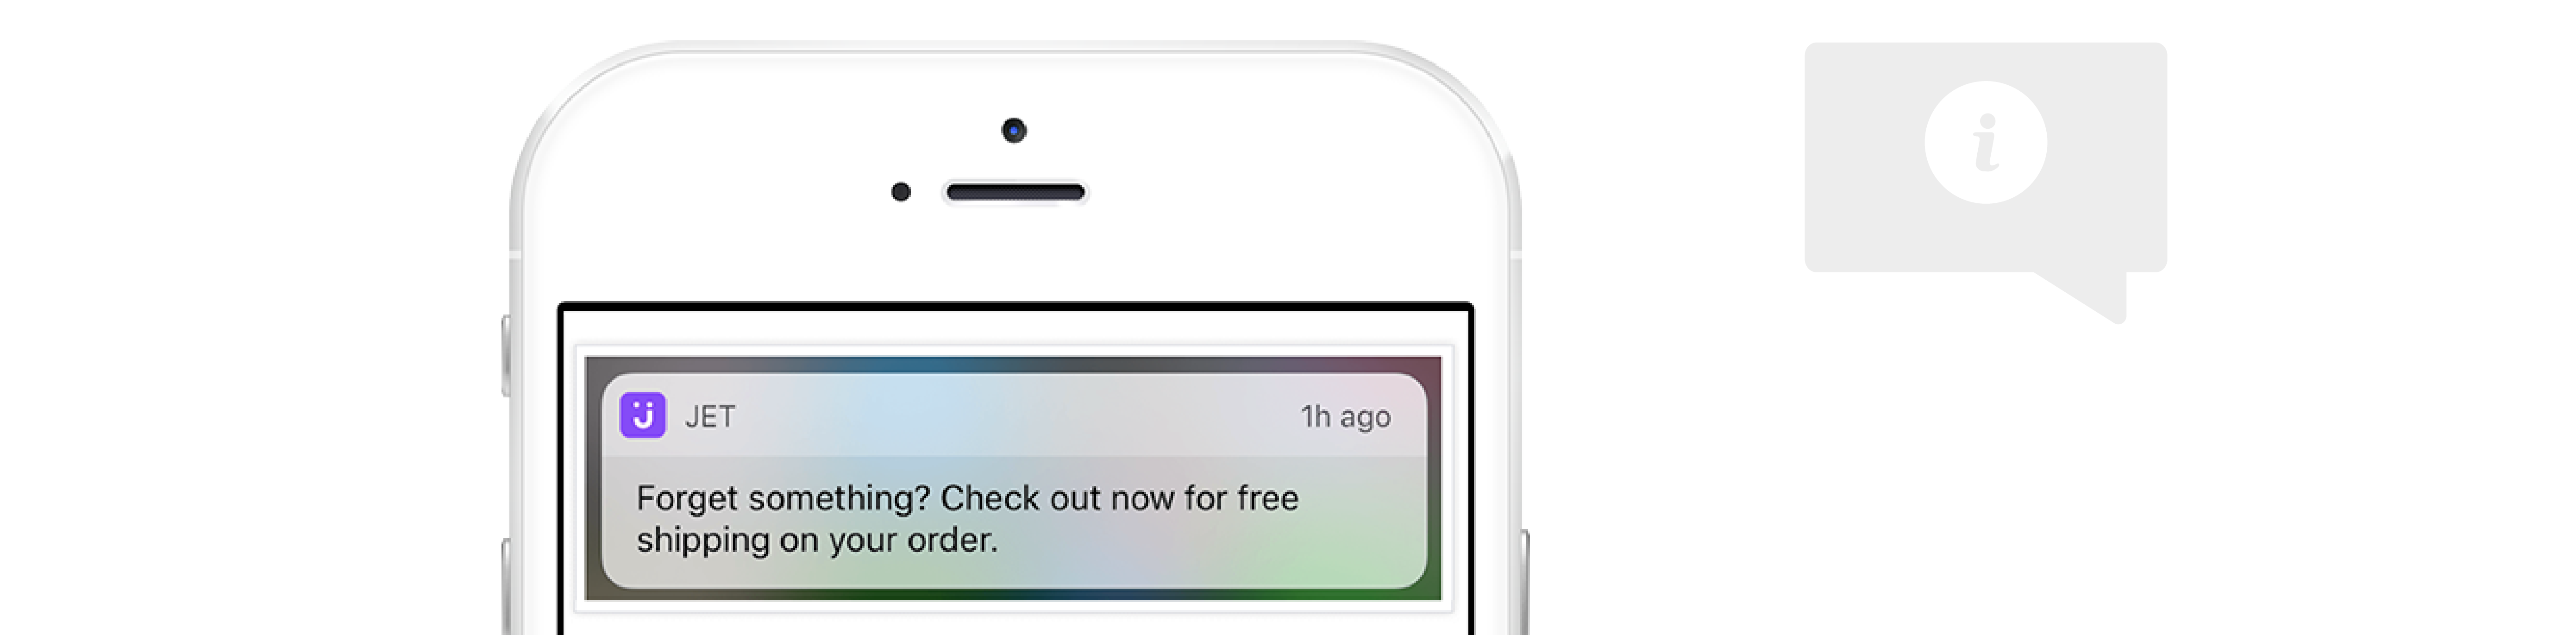 8 Types of Push Notifications with Great Examples